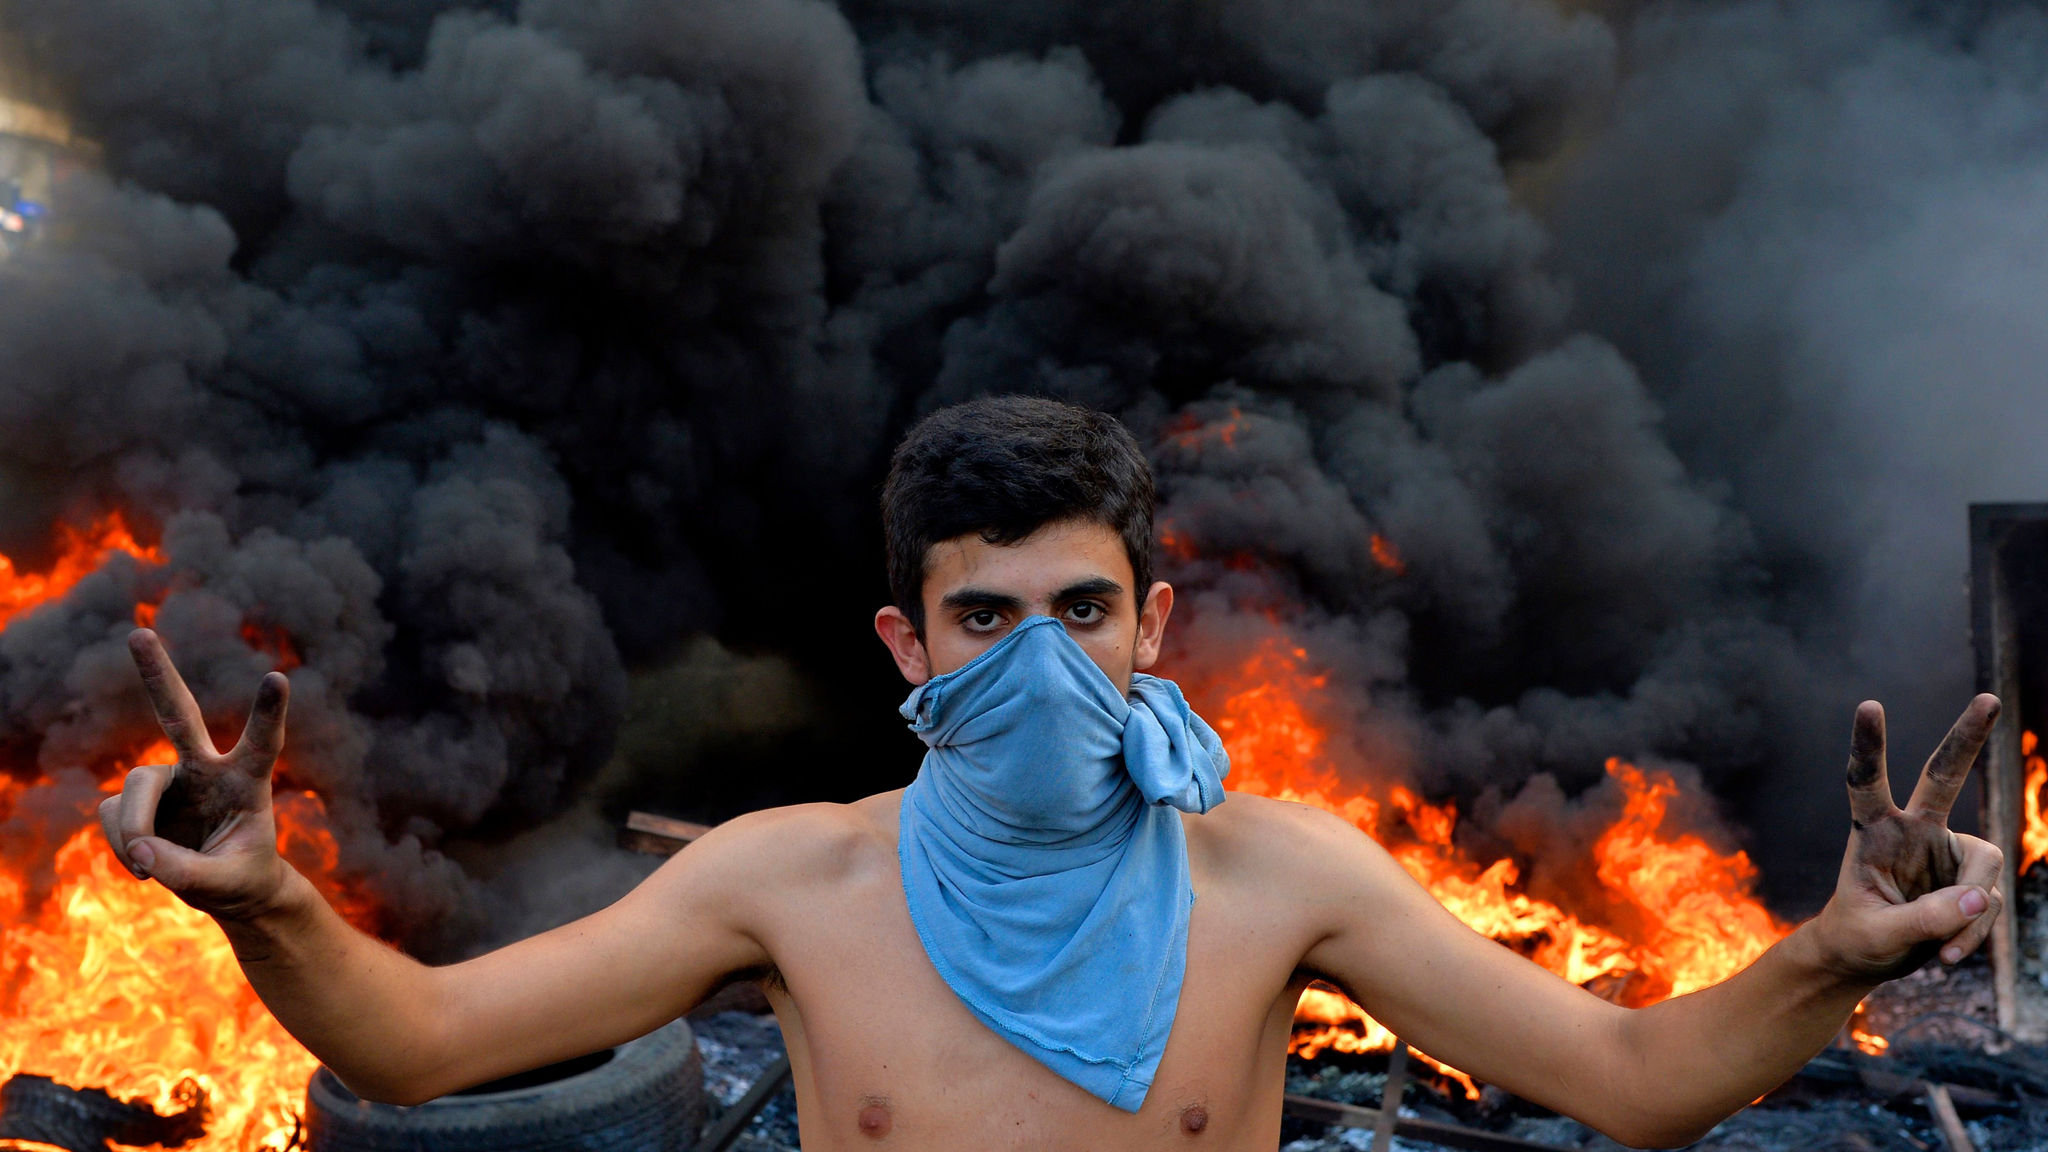 Lebanon engulfed by protests in wave of fury against political elite